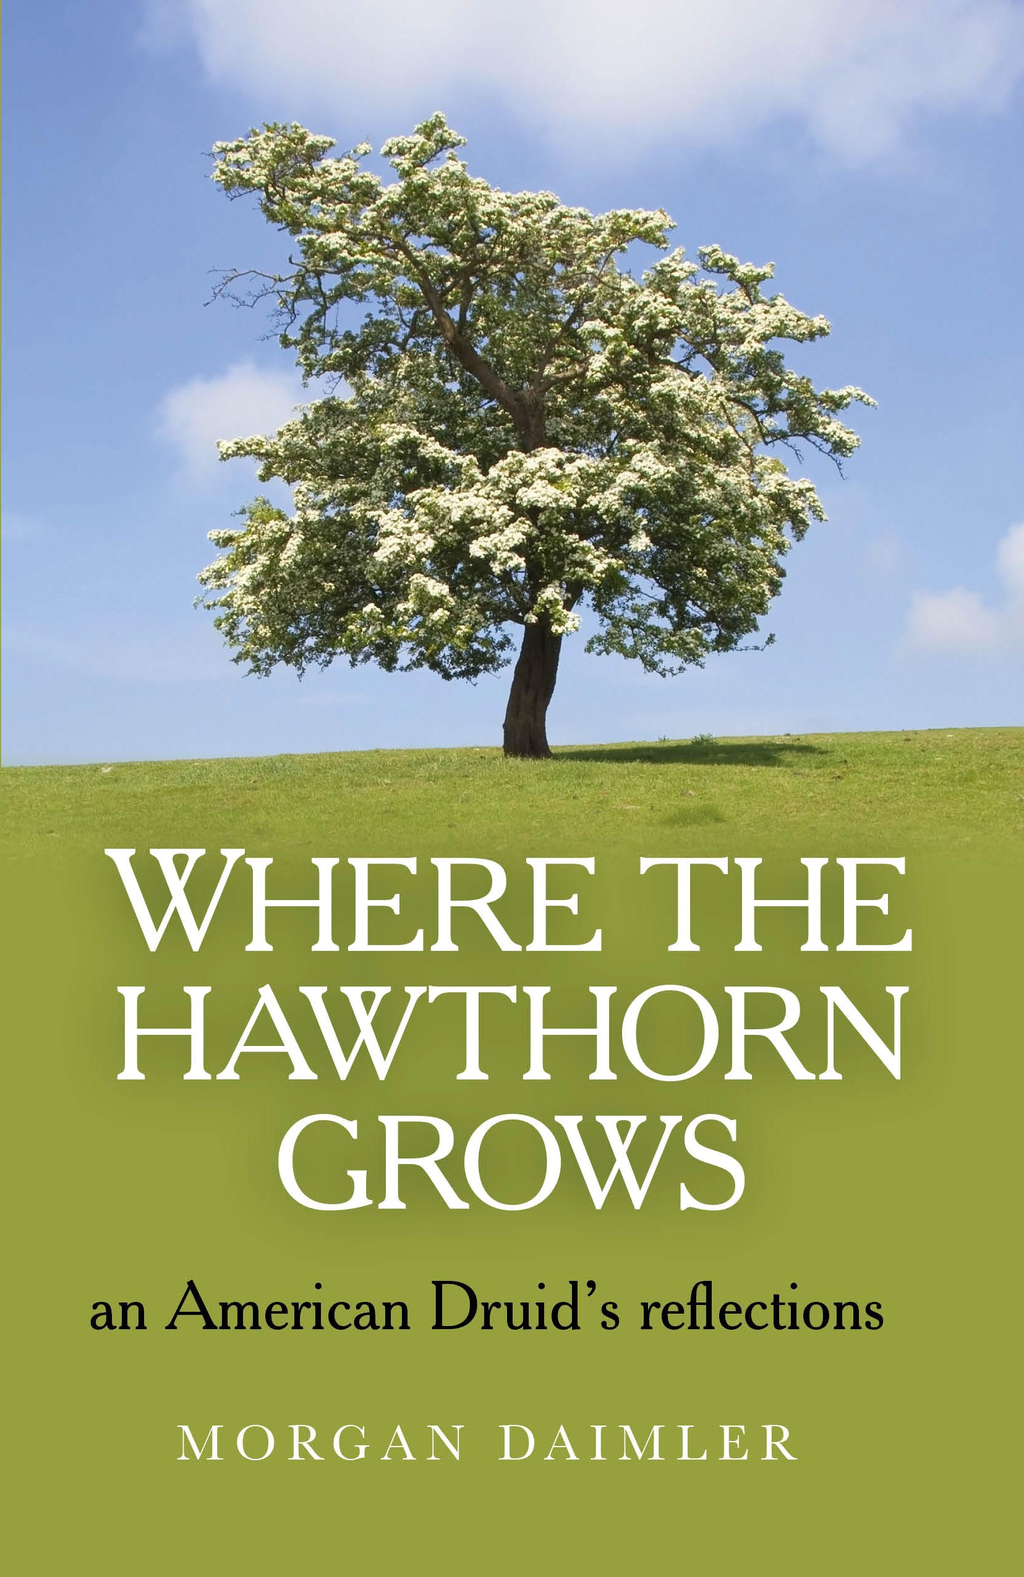 Where the Hawthorn Grows